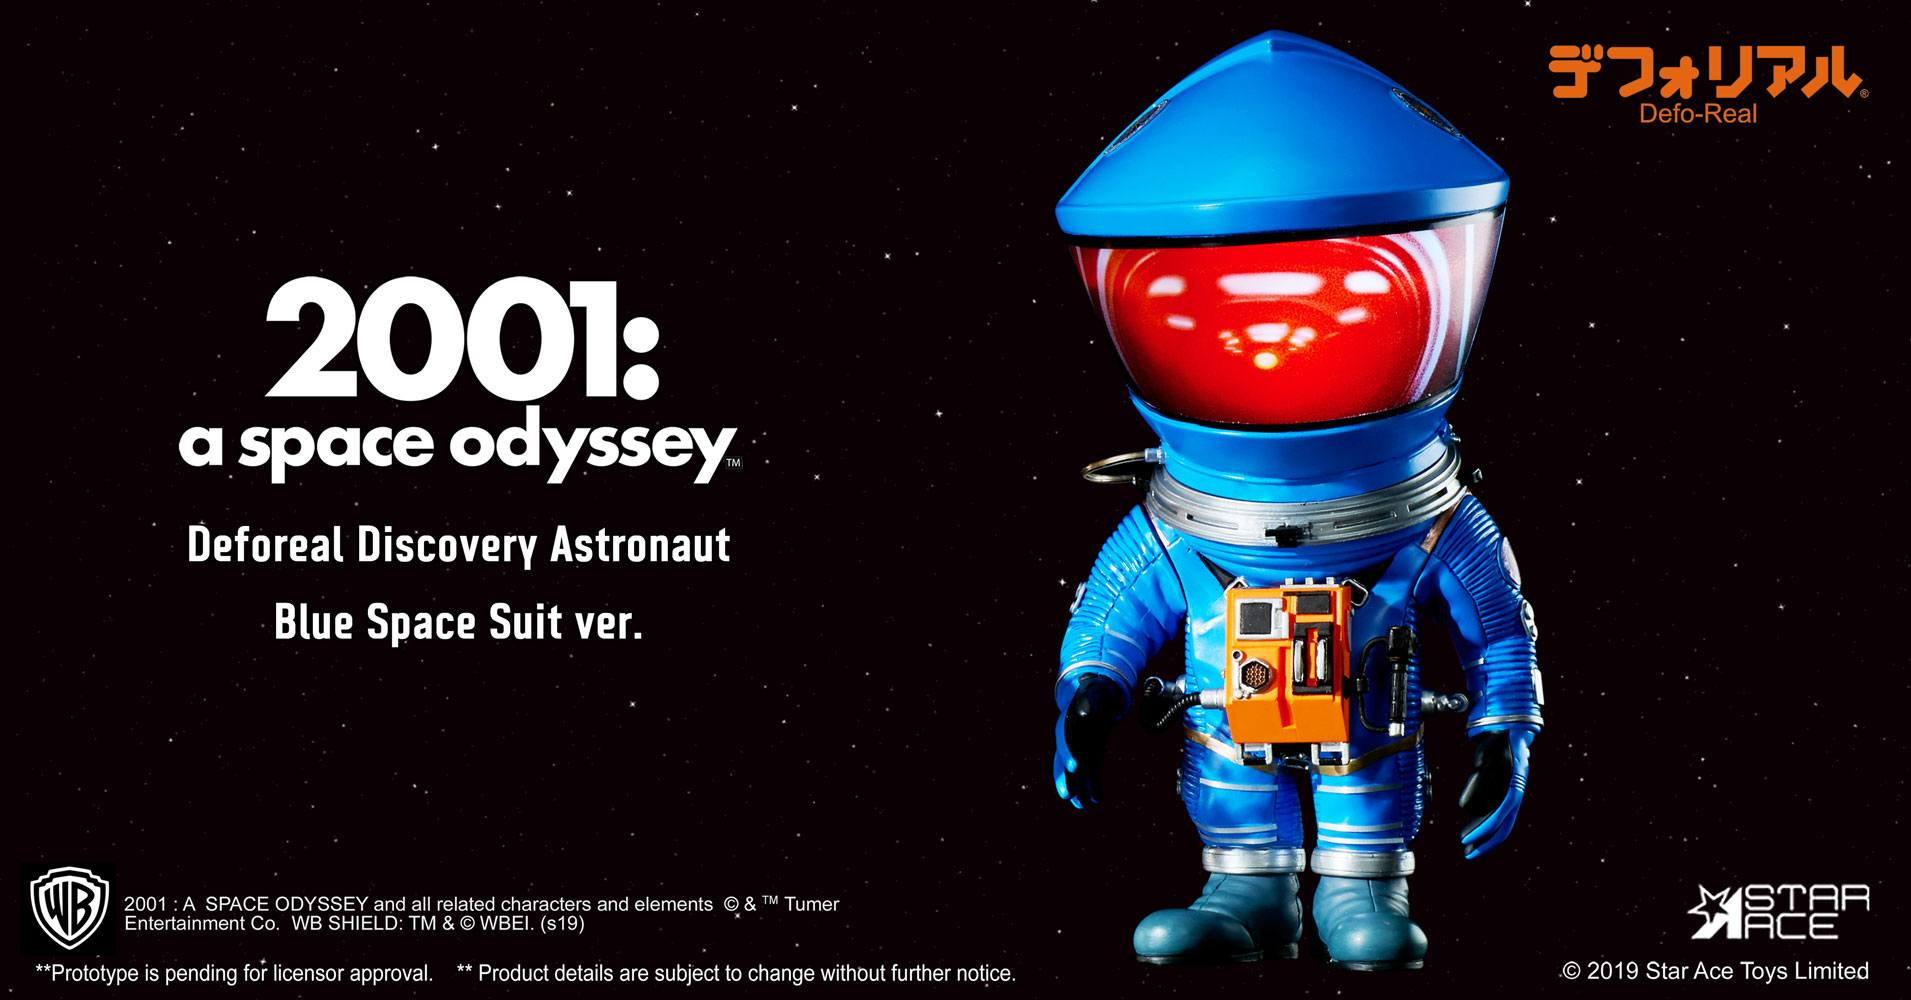 2001: A Space Odyssey Artist Defo-Real Series Soft Vinyl Figure DF Astronaut Blue Ver. 15 cm